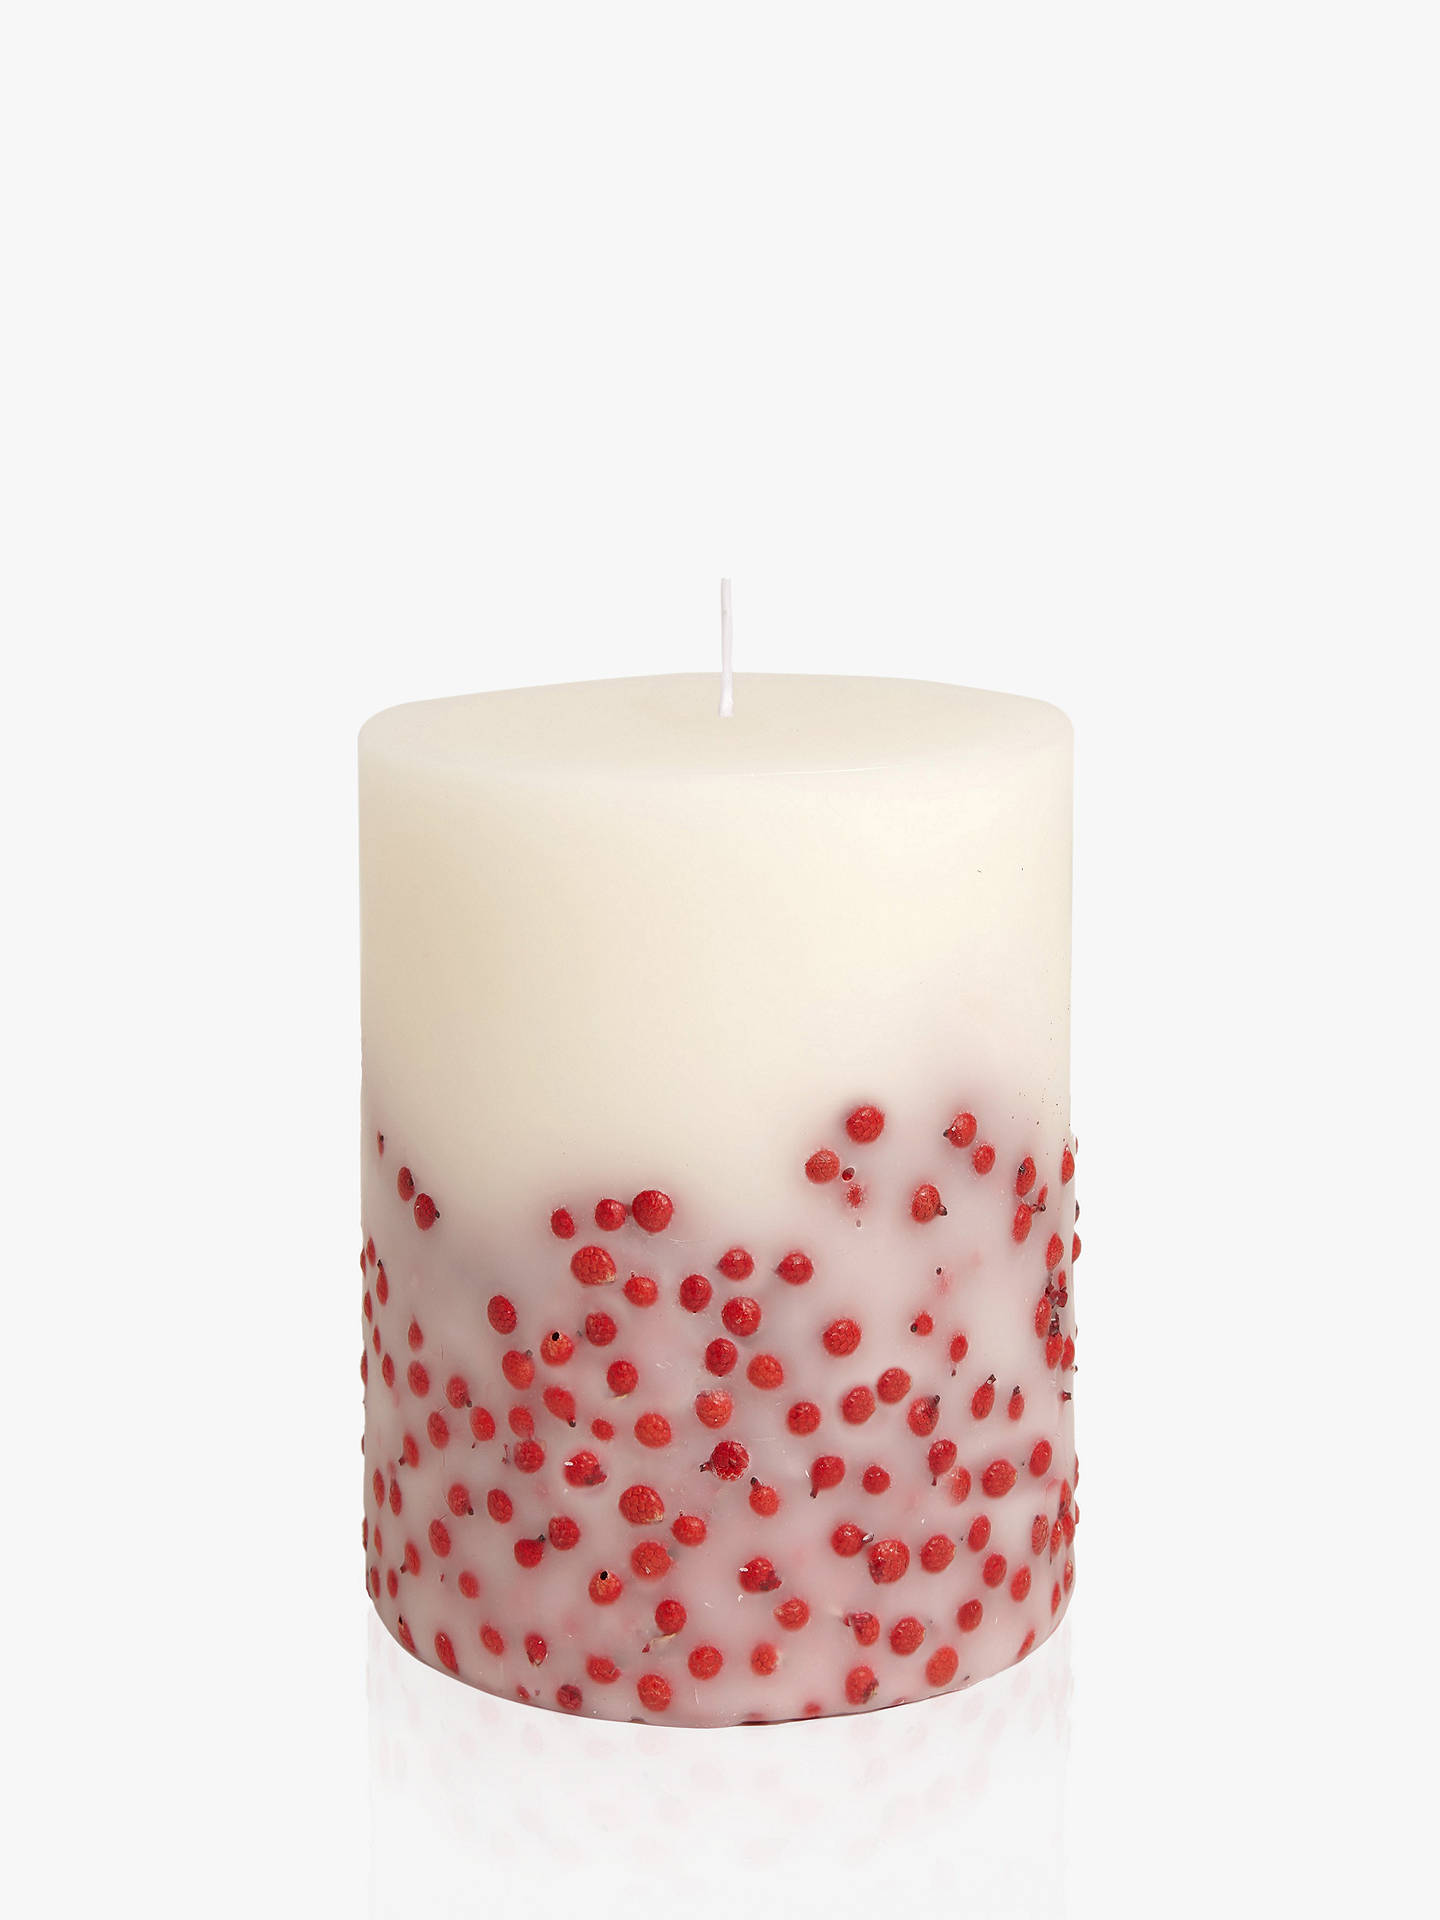 BuyAcqua di Parma Fruit and Flower Red Berries Candle, 900g Online at johnlewis.com